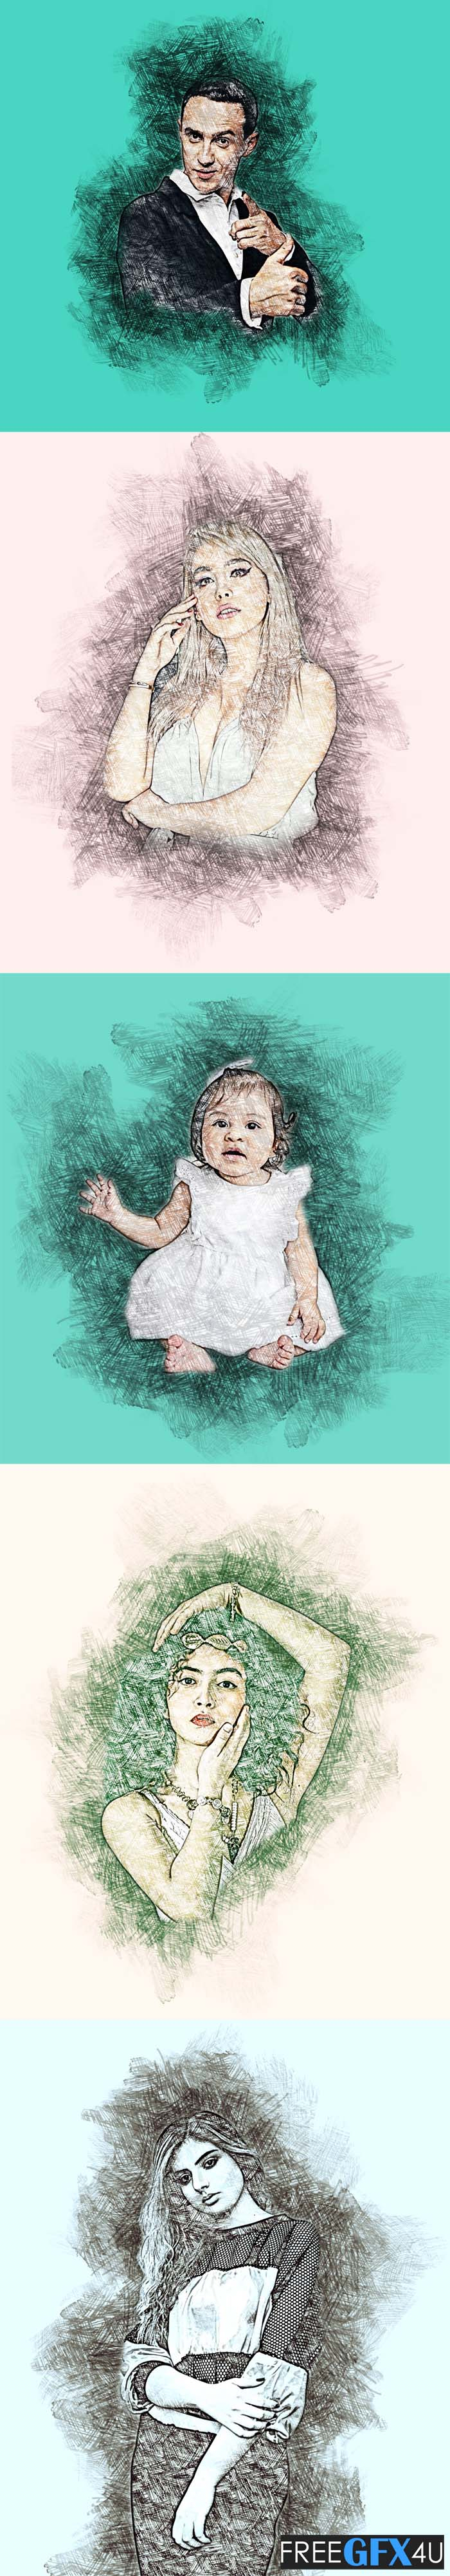 Abstract Sketch Photoshop Actions